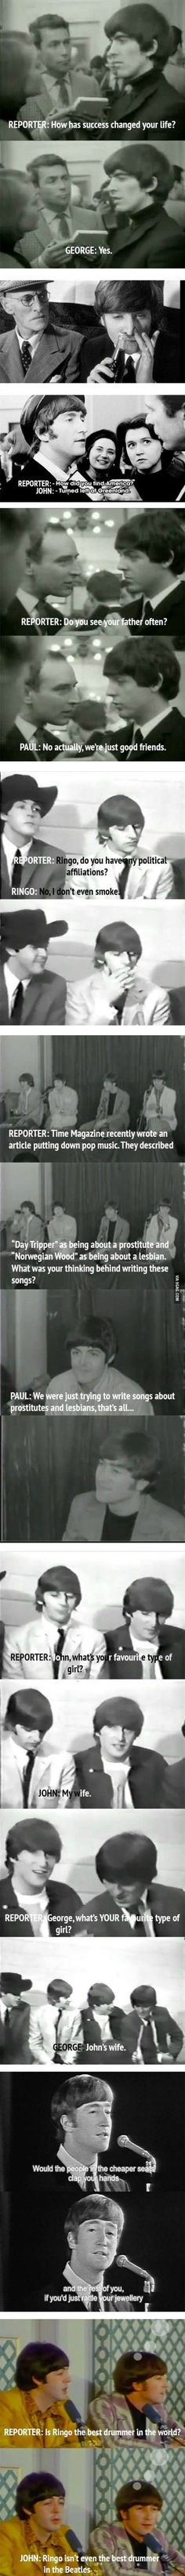 The Beatles were masters at answering interview questions